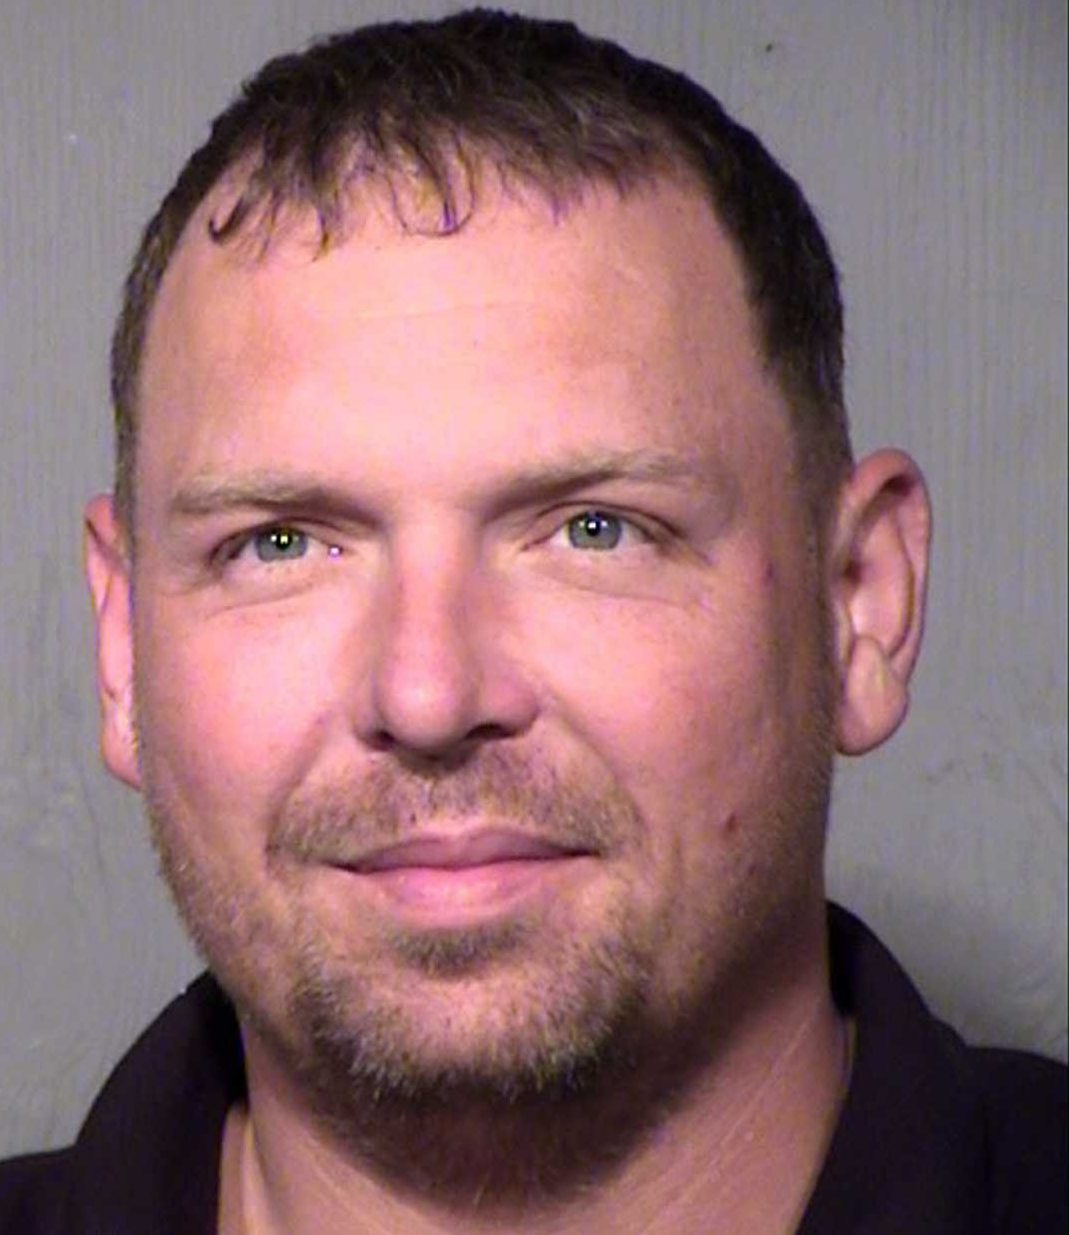 Michael Navage A Mesa male was arrested Wednesday on guess of bestiality involving a cat, according to Maricopa County justice records.